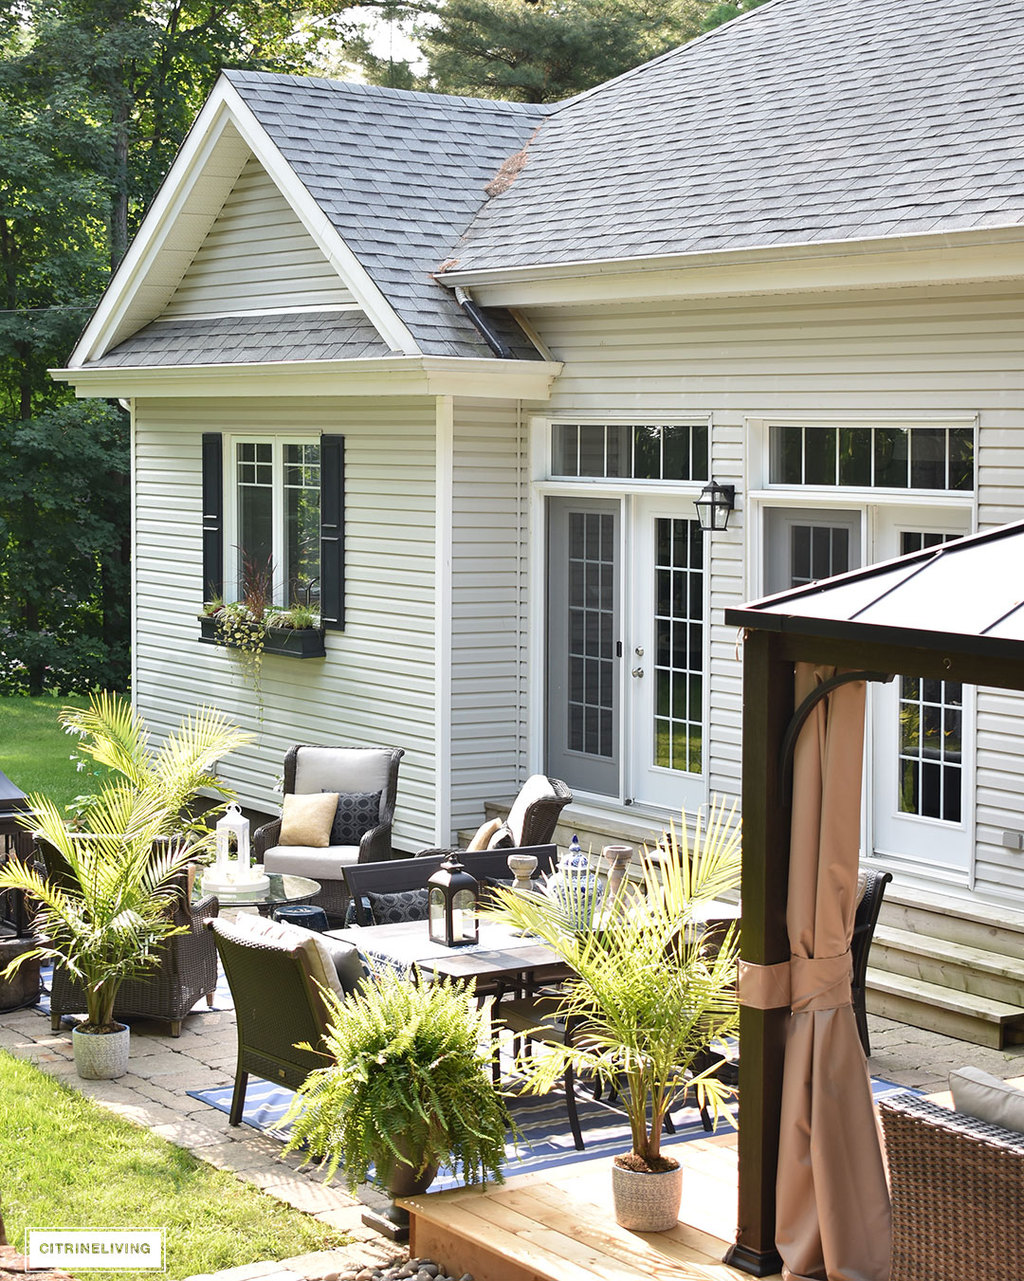 Home exterior with grey siding and roof, black shutters and window boxes, and backyard patio featuring 3 entertaining zones - lounge, dining and conversation.